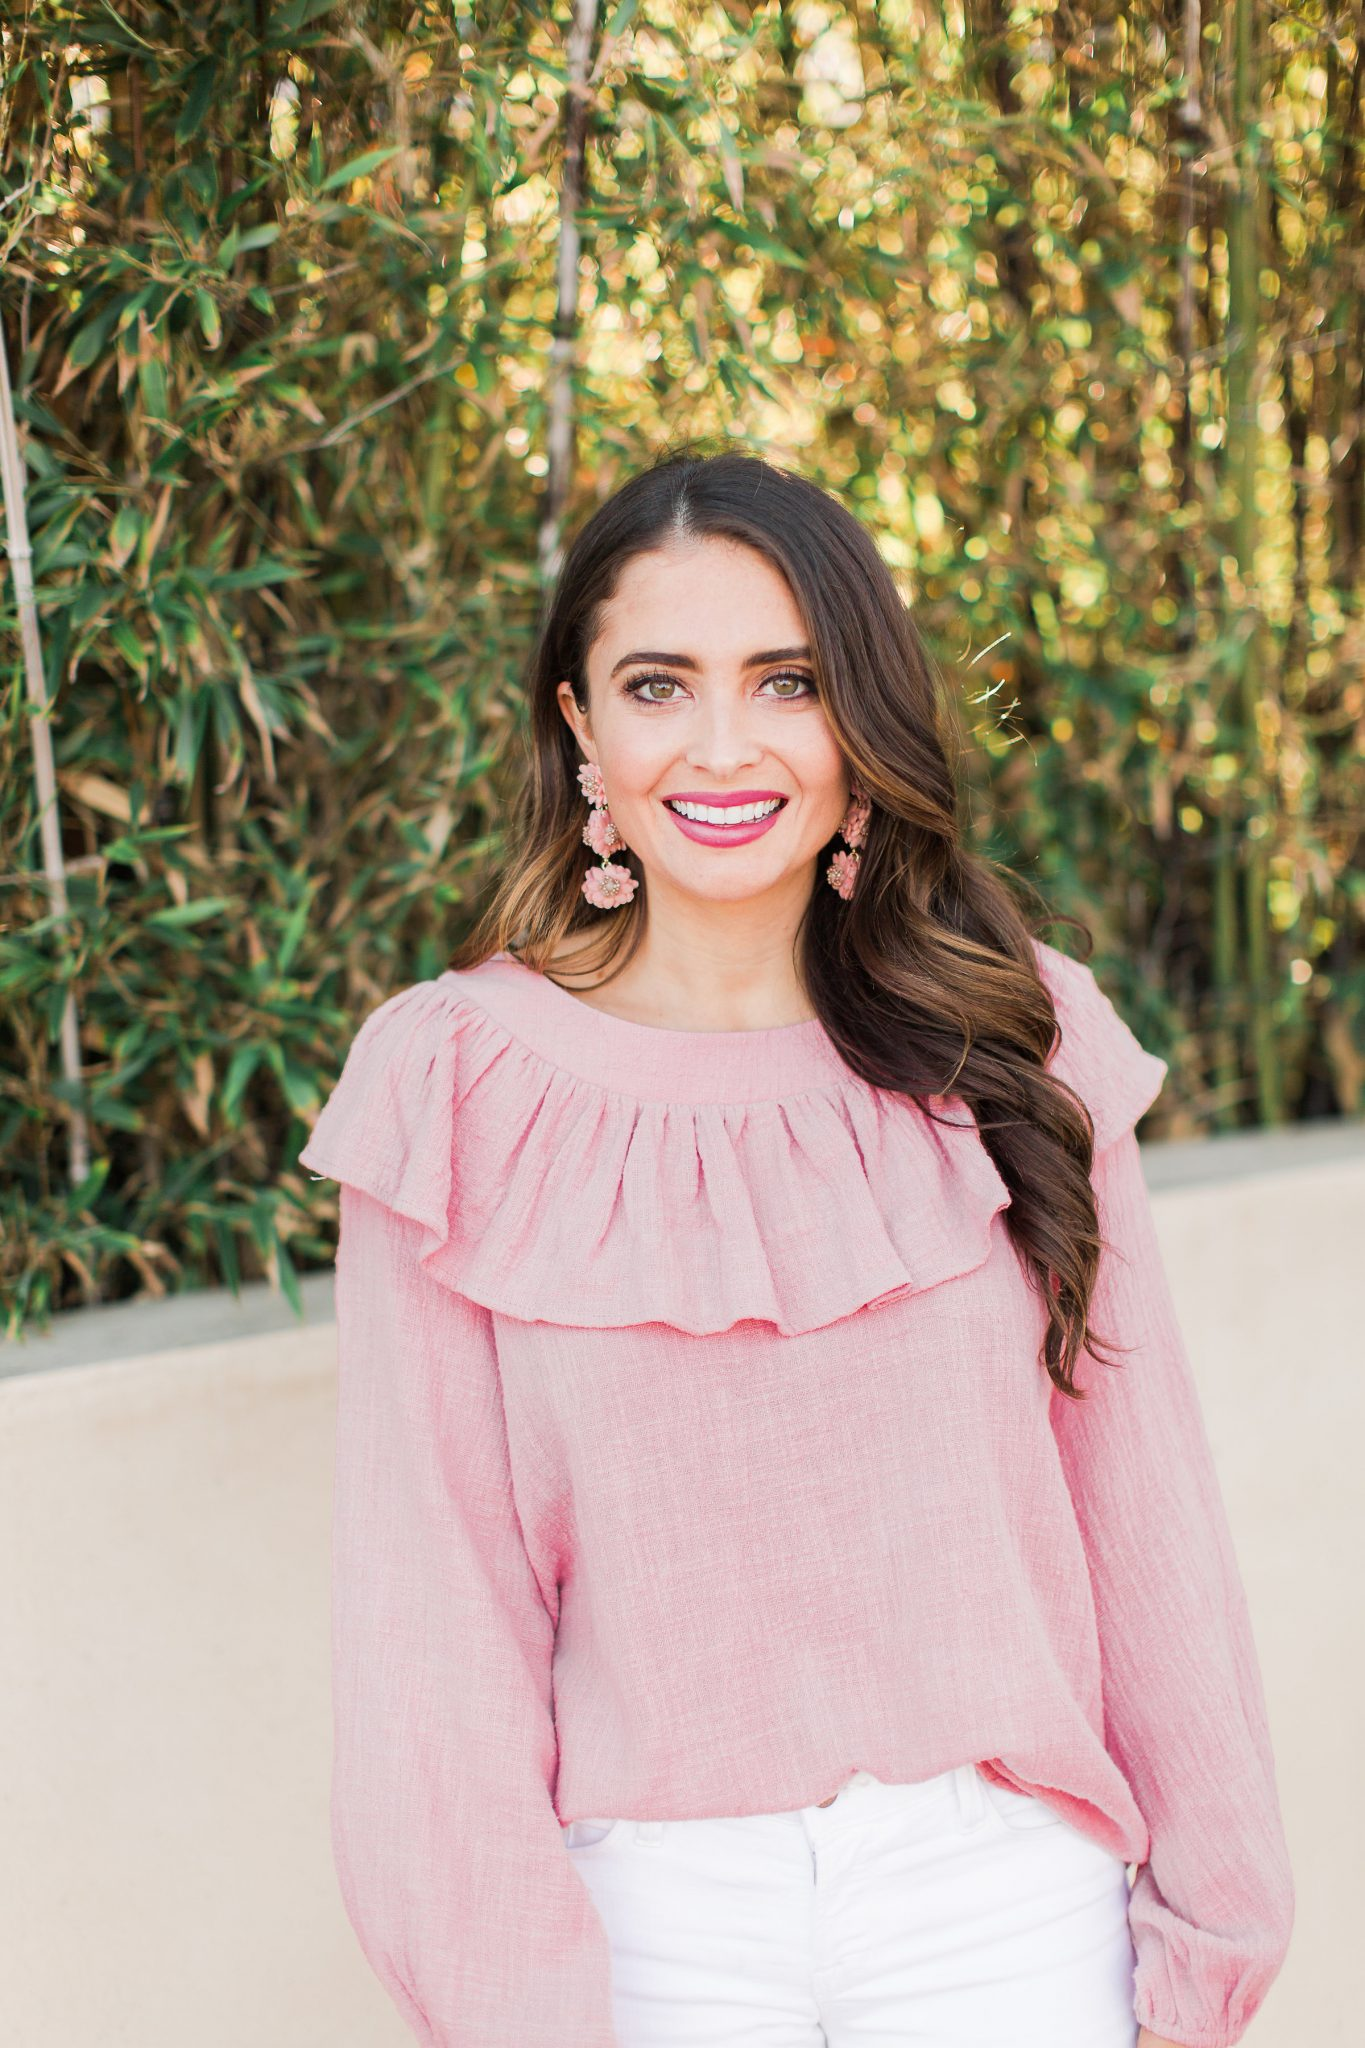 Pink ruffle top and flower earrings - Baublebar Earrings Sale Favorites by popular Orange County fashion blogger Maxie Elle